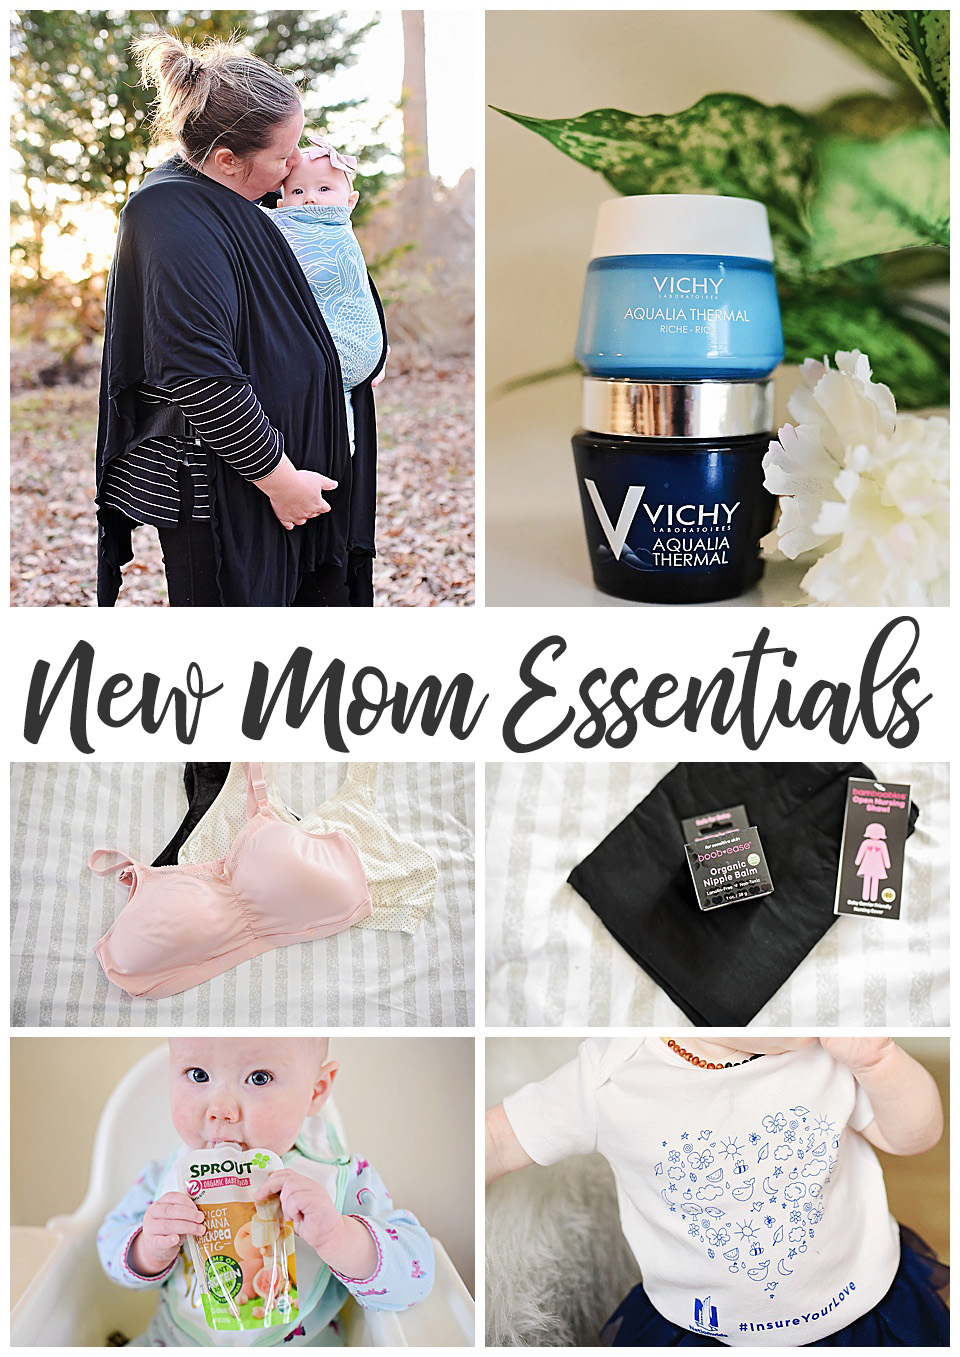 New Mom Essentials